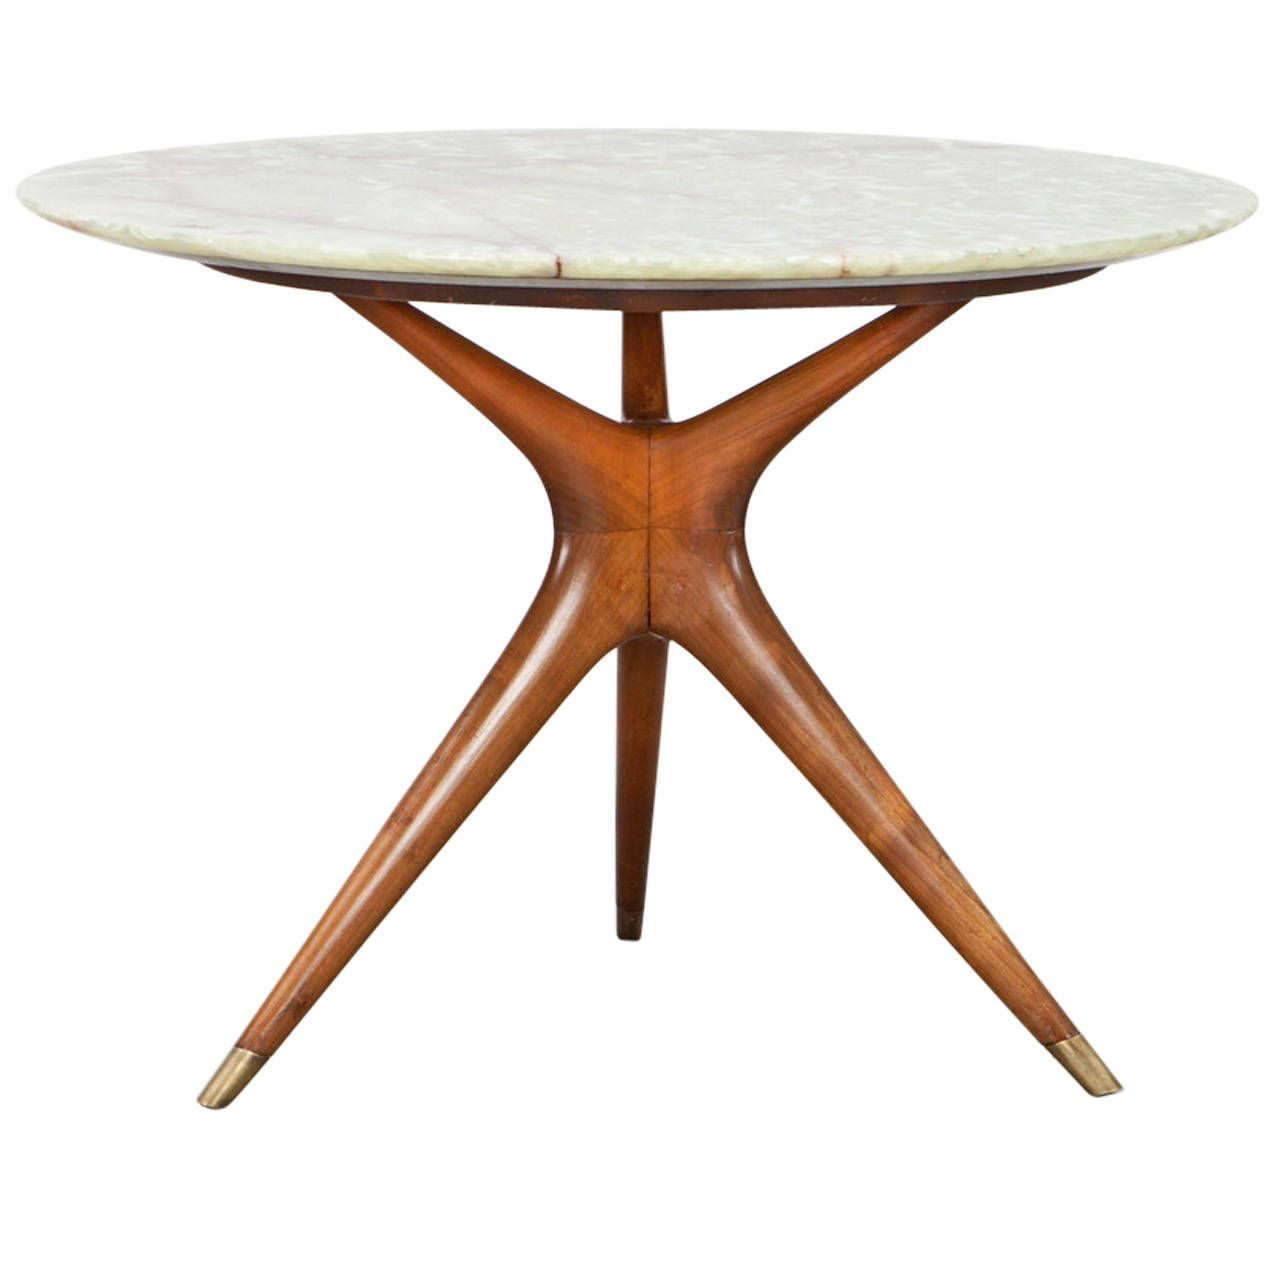 Ico Parisi Round Marble-Top Table | From a unique collection of ...